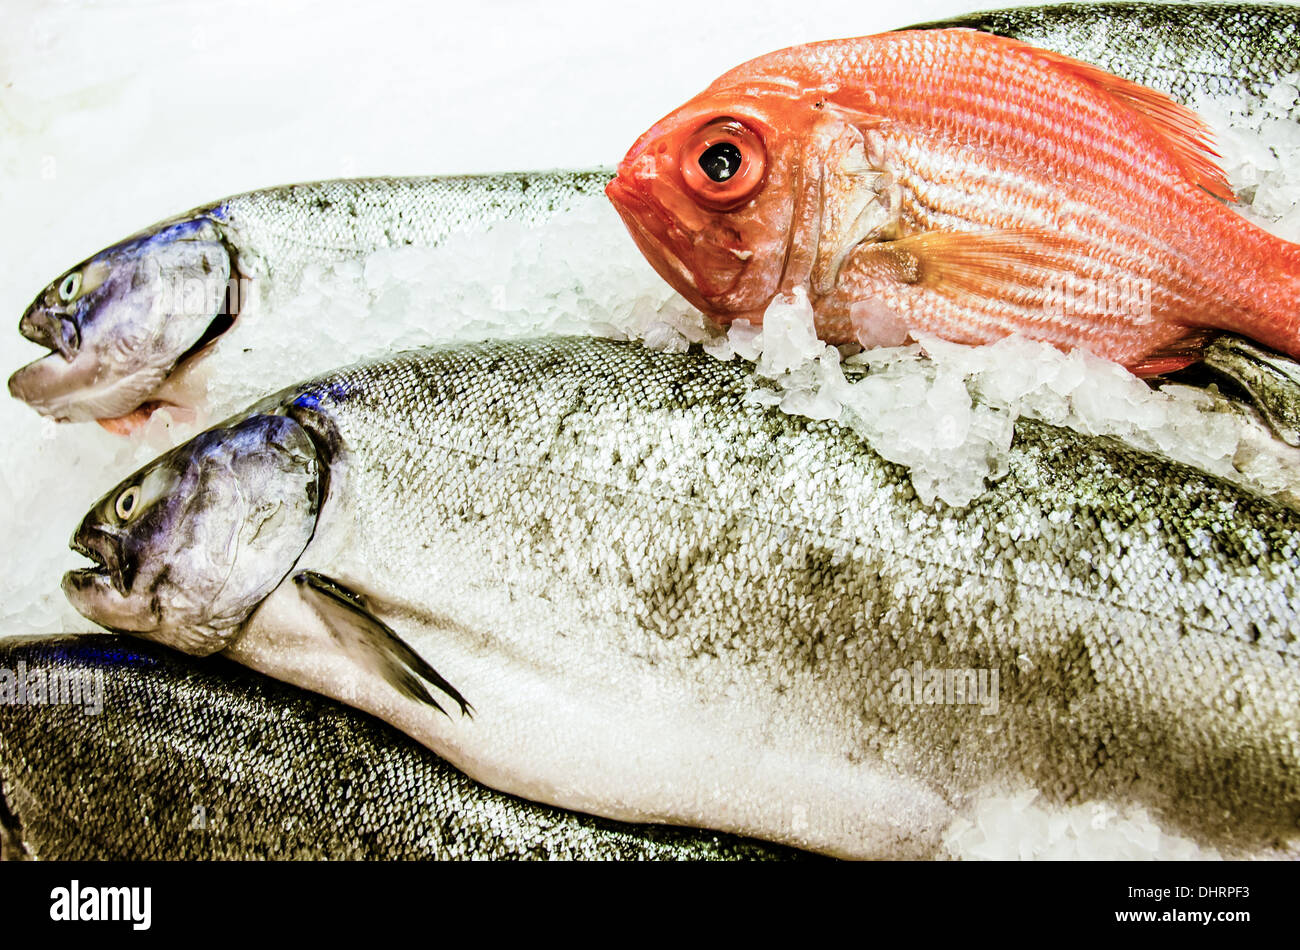 Close-up of fresh fish on a bed of ice for sale including red snapper. Stock Photo